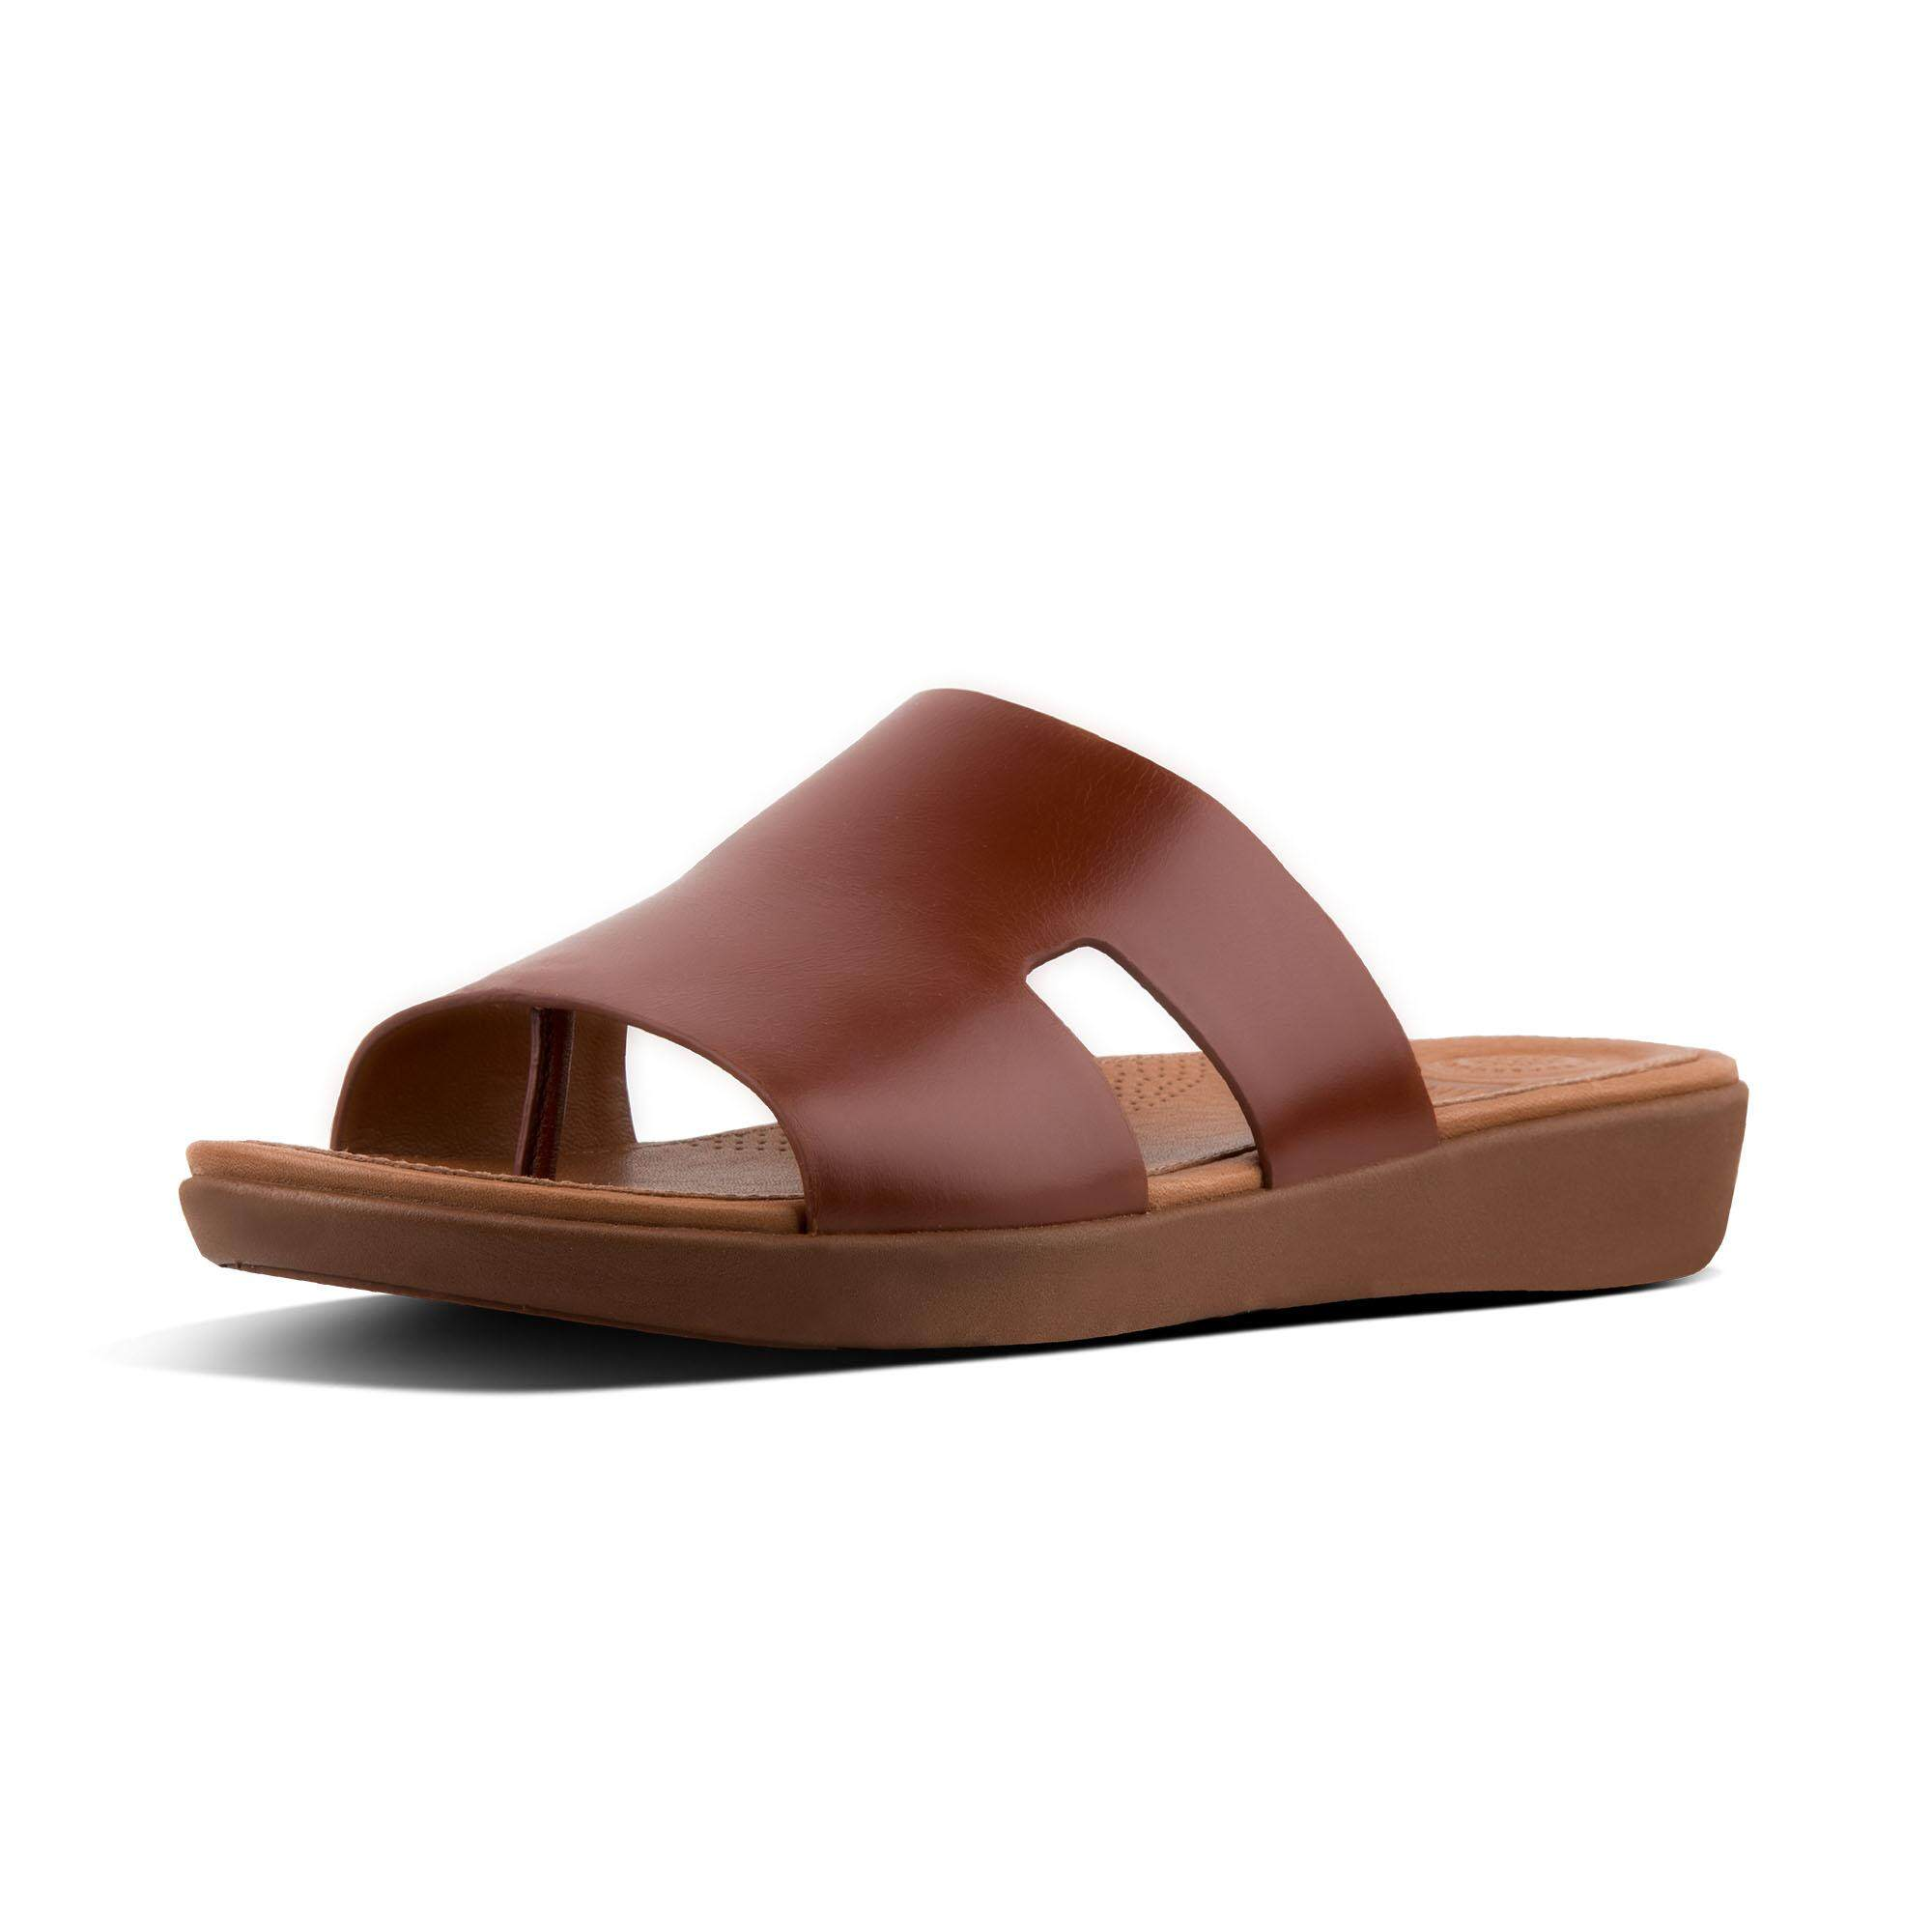 7998d5827a0726 Popular Fitflop Sandals for the Best Prices in Malaysia